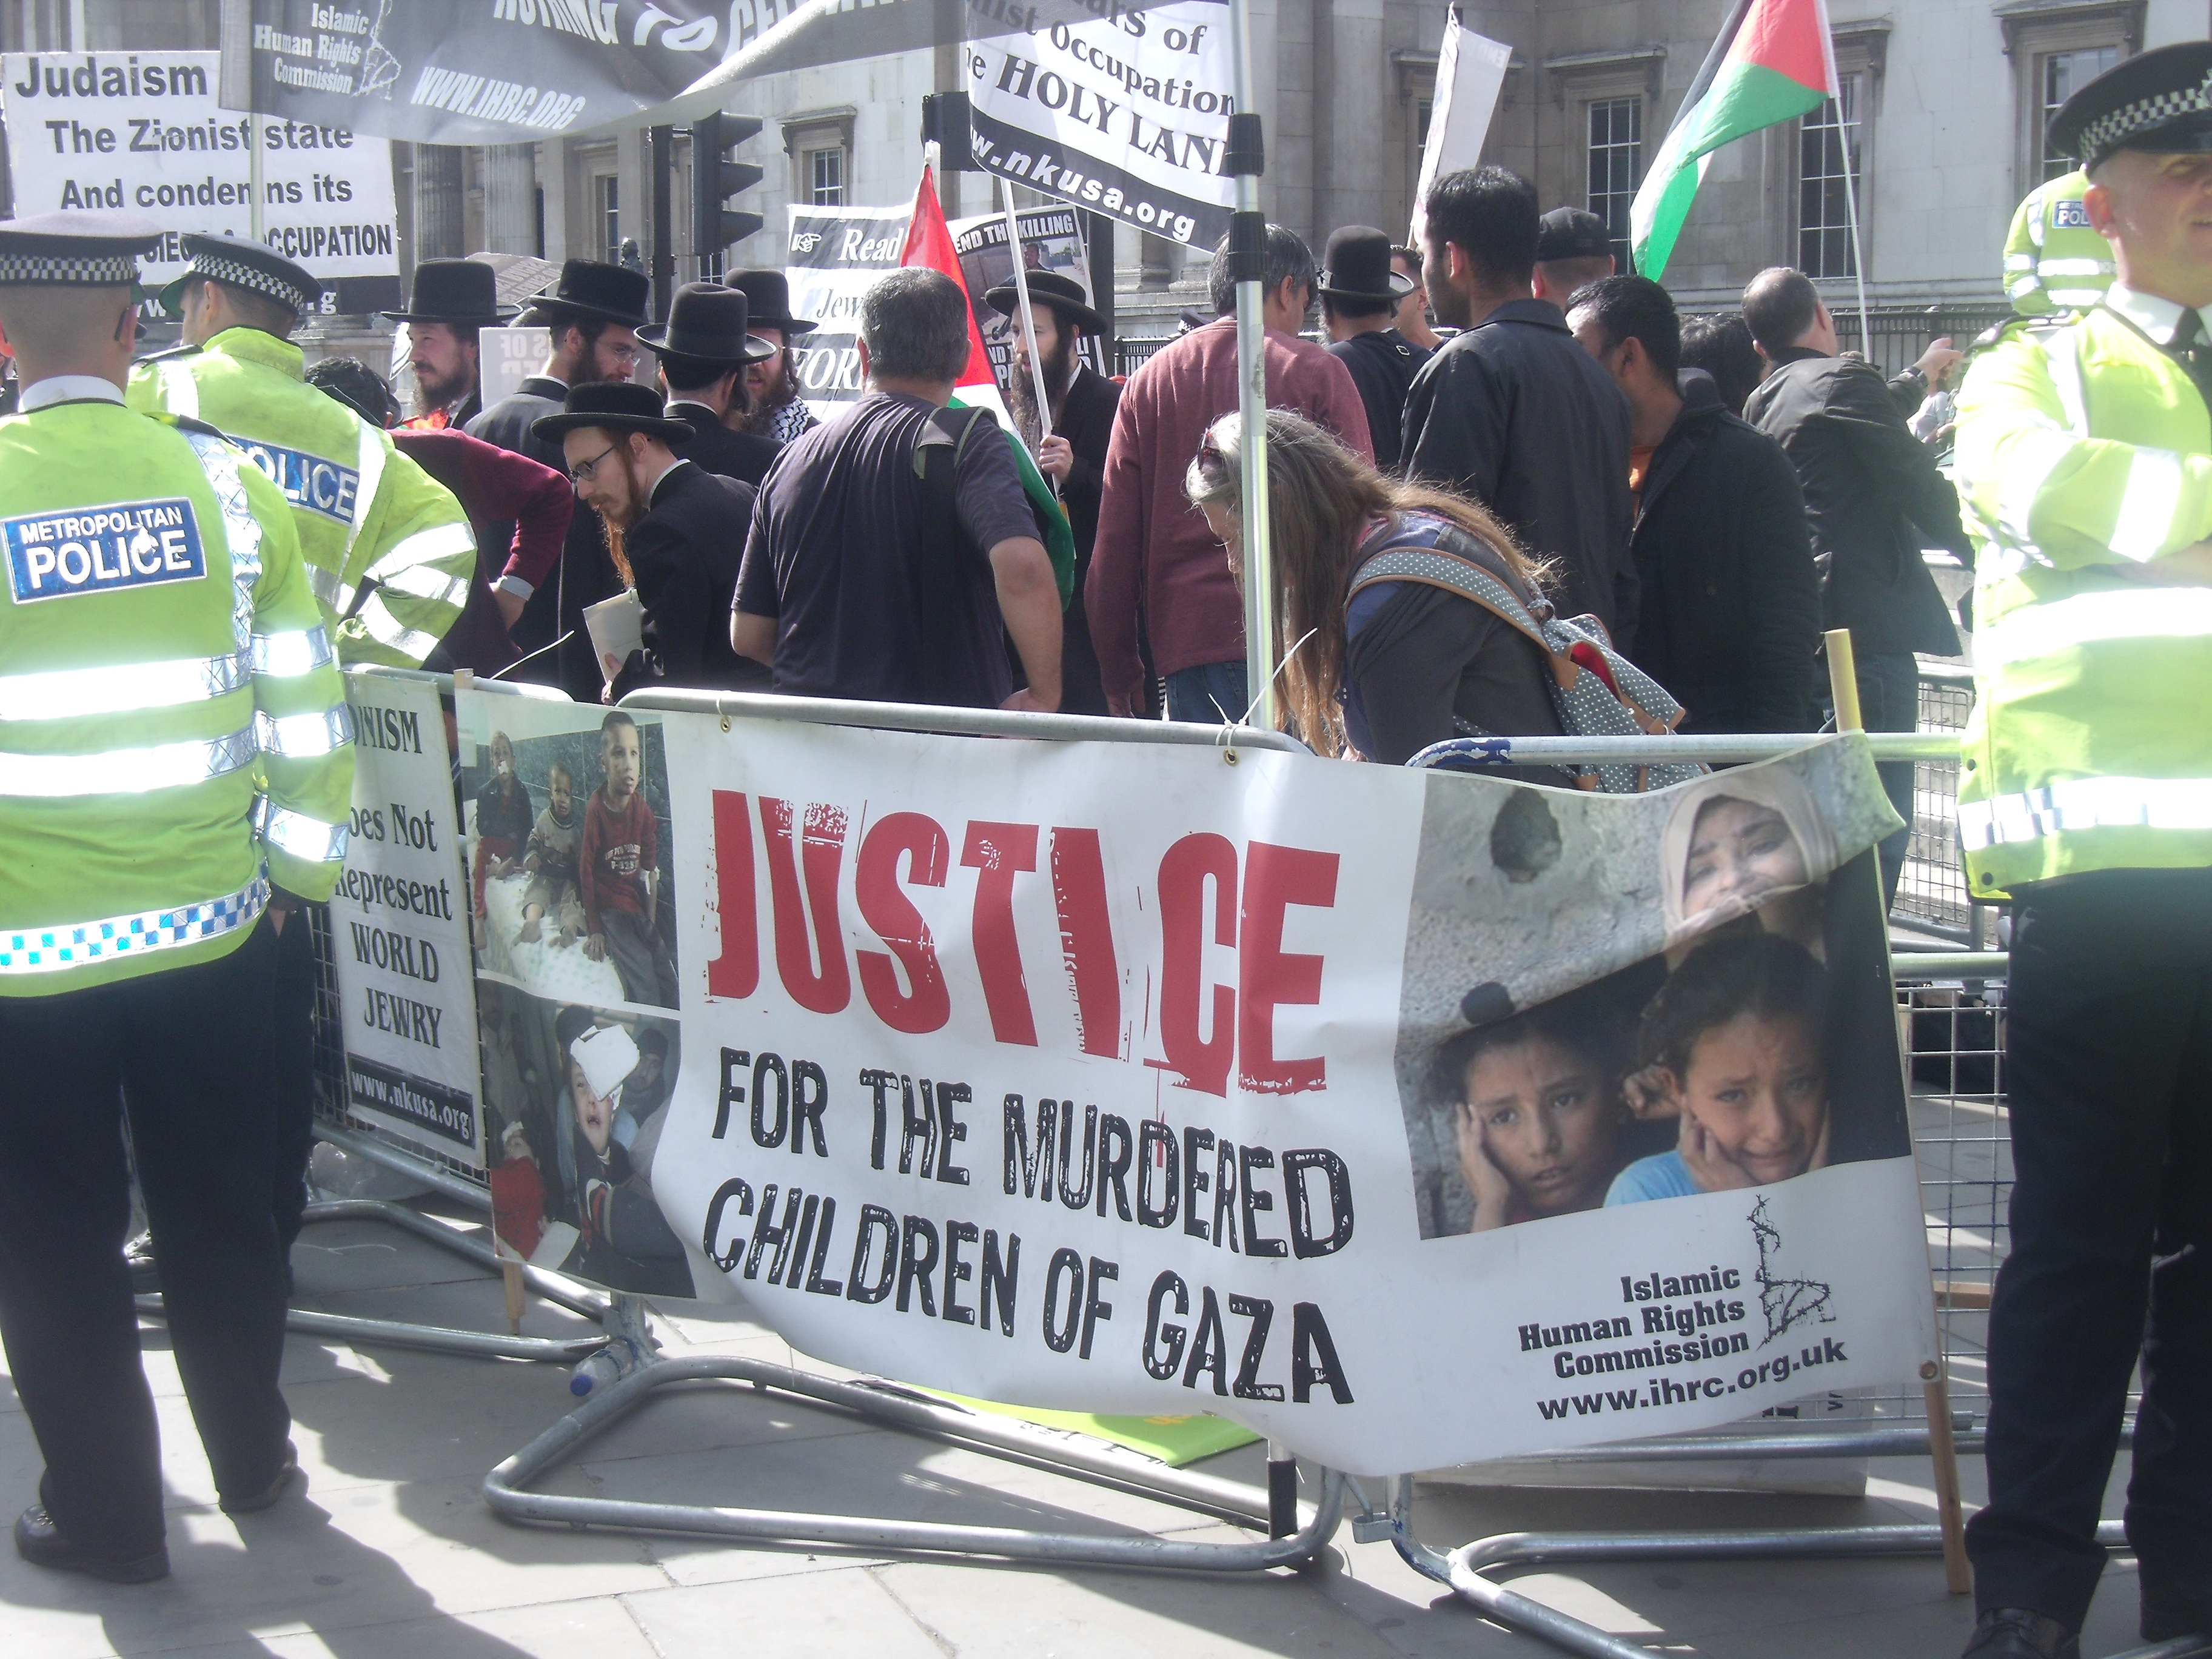 I agree with this placard. But the Palestinian children are being murdered by the Hamas government.